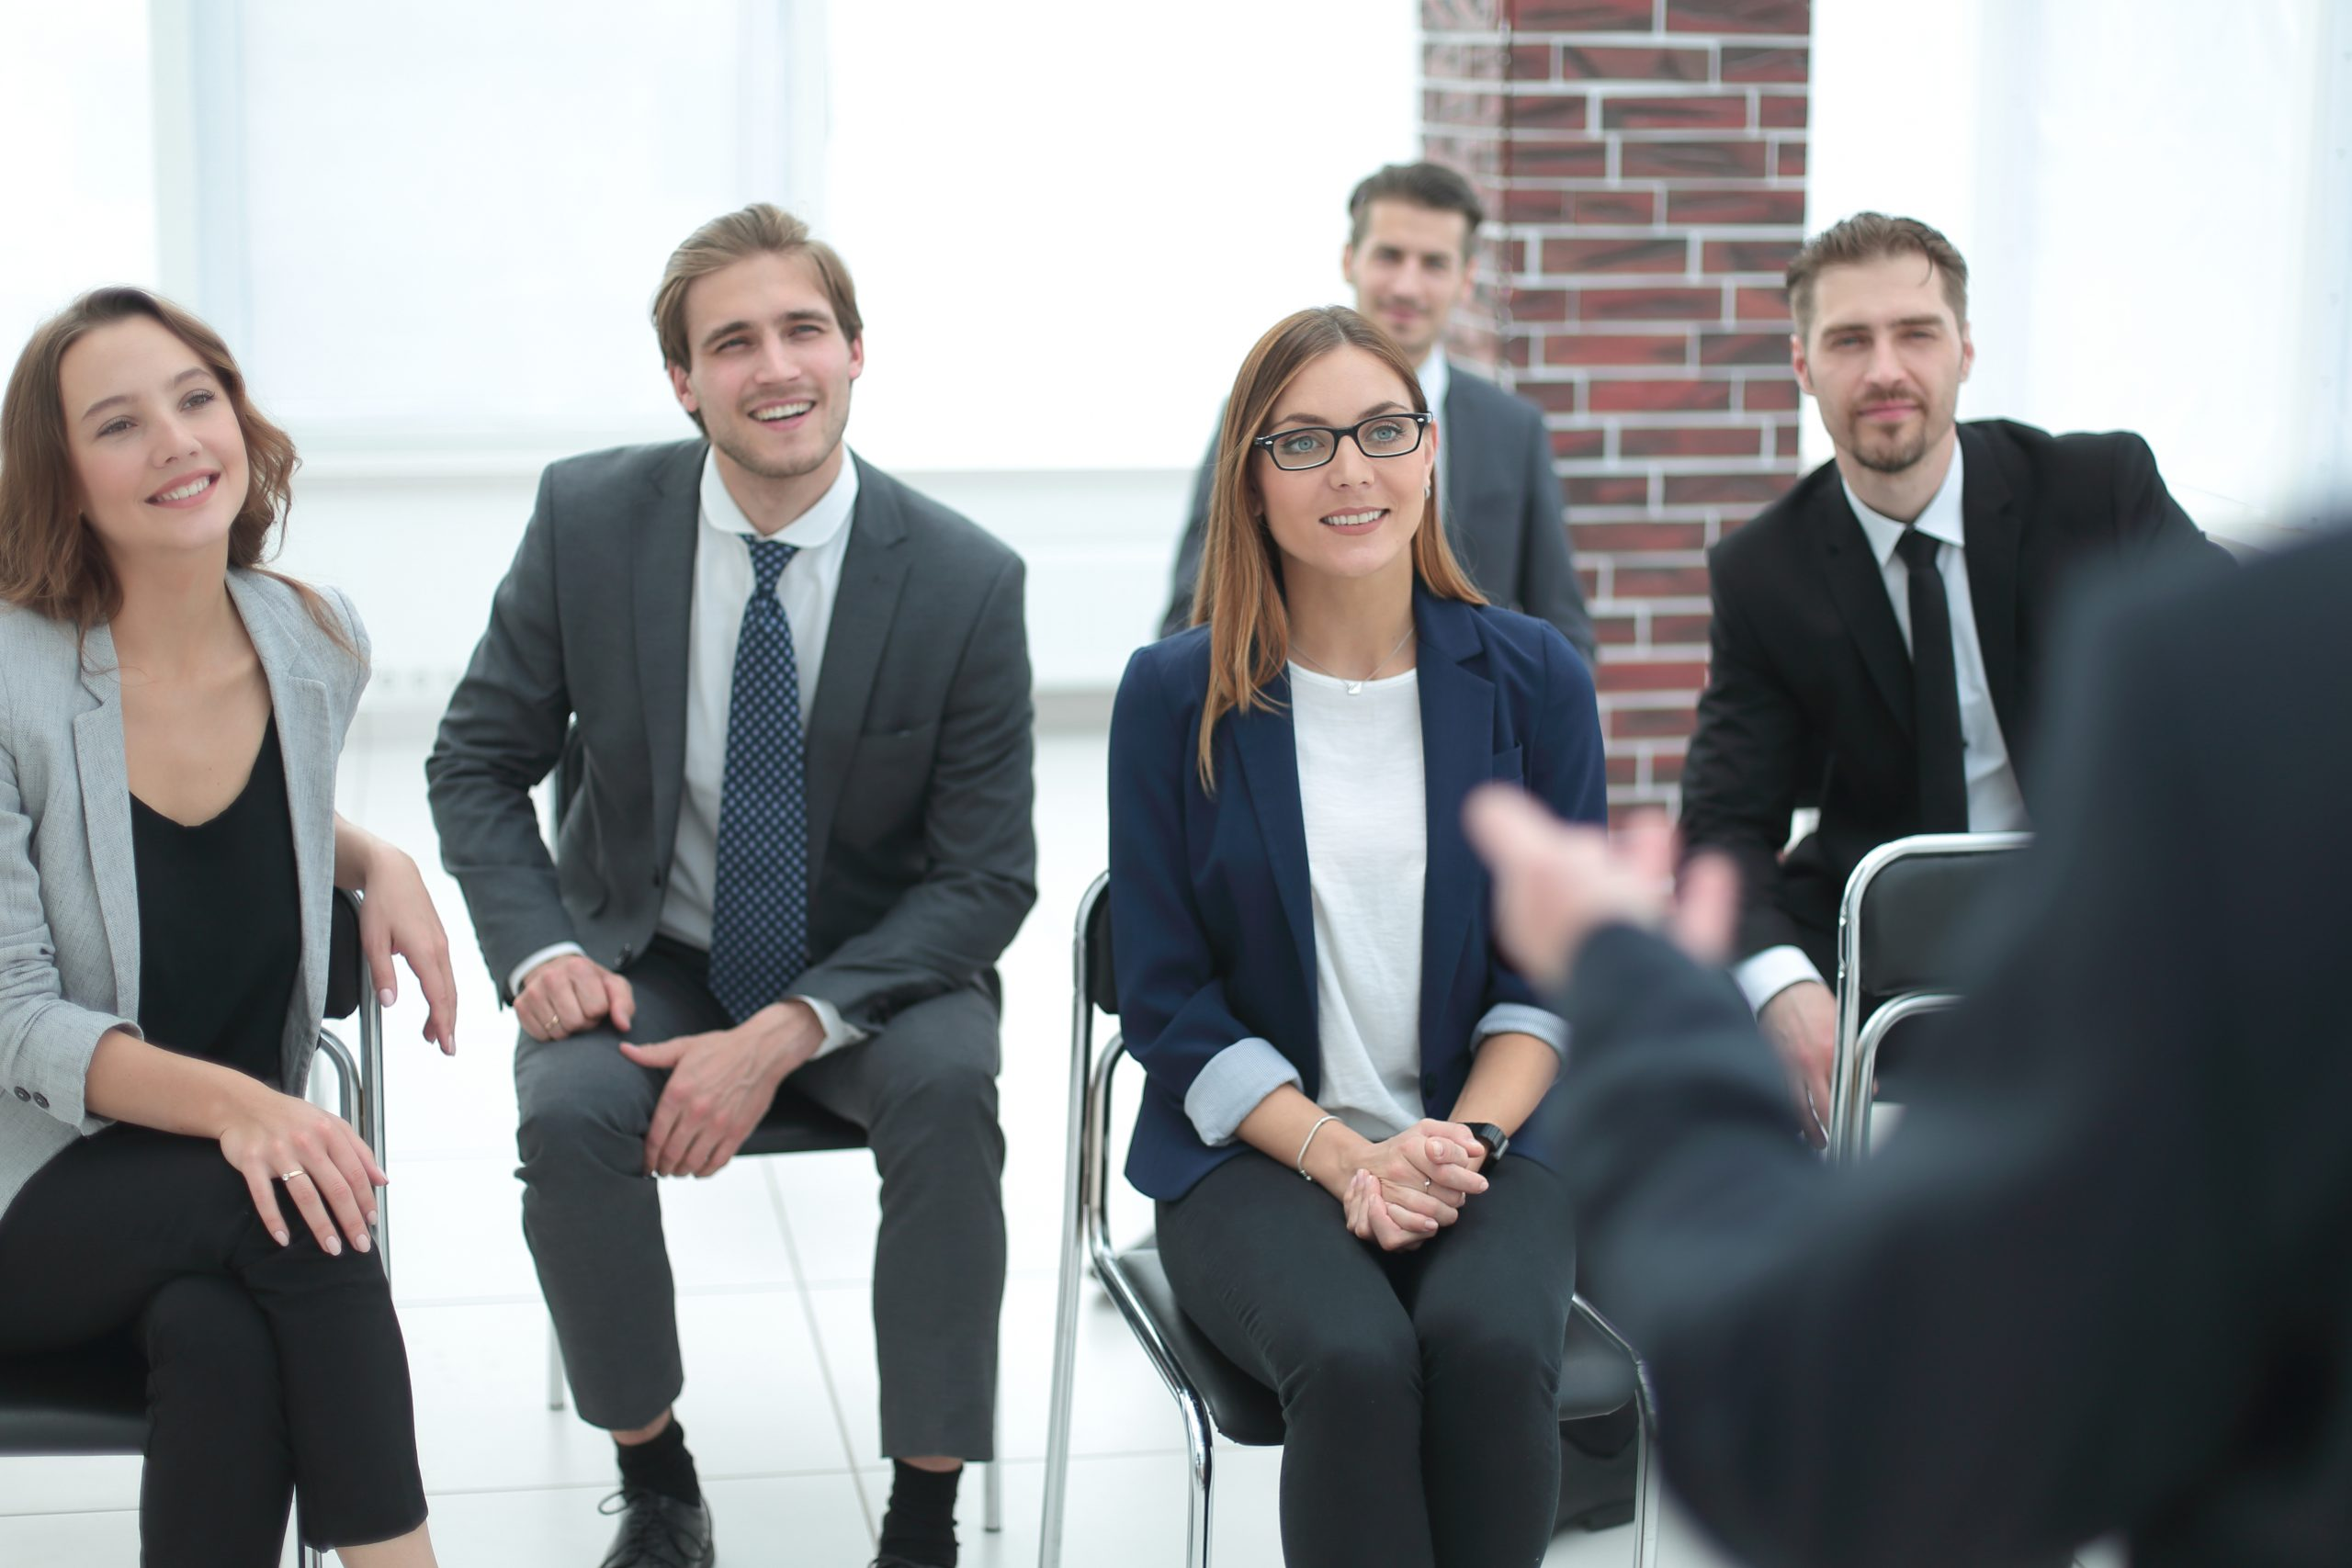 Viewpoint shot of business people in the meeting room